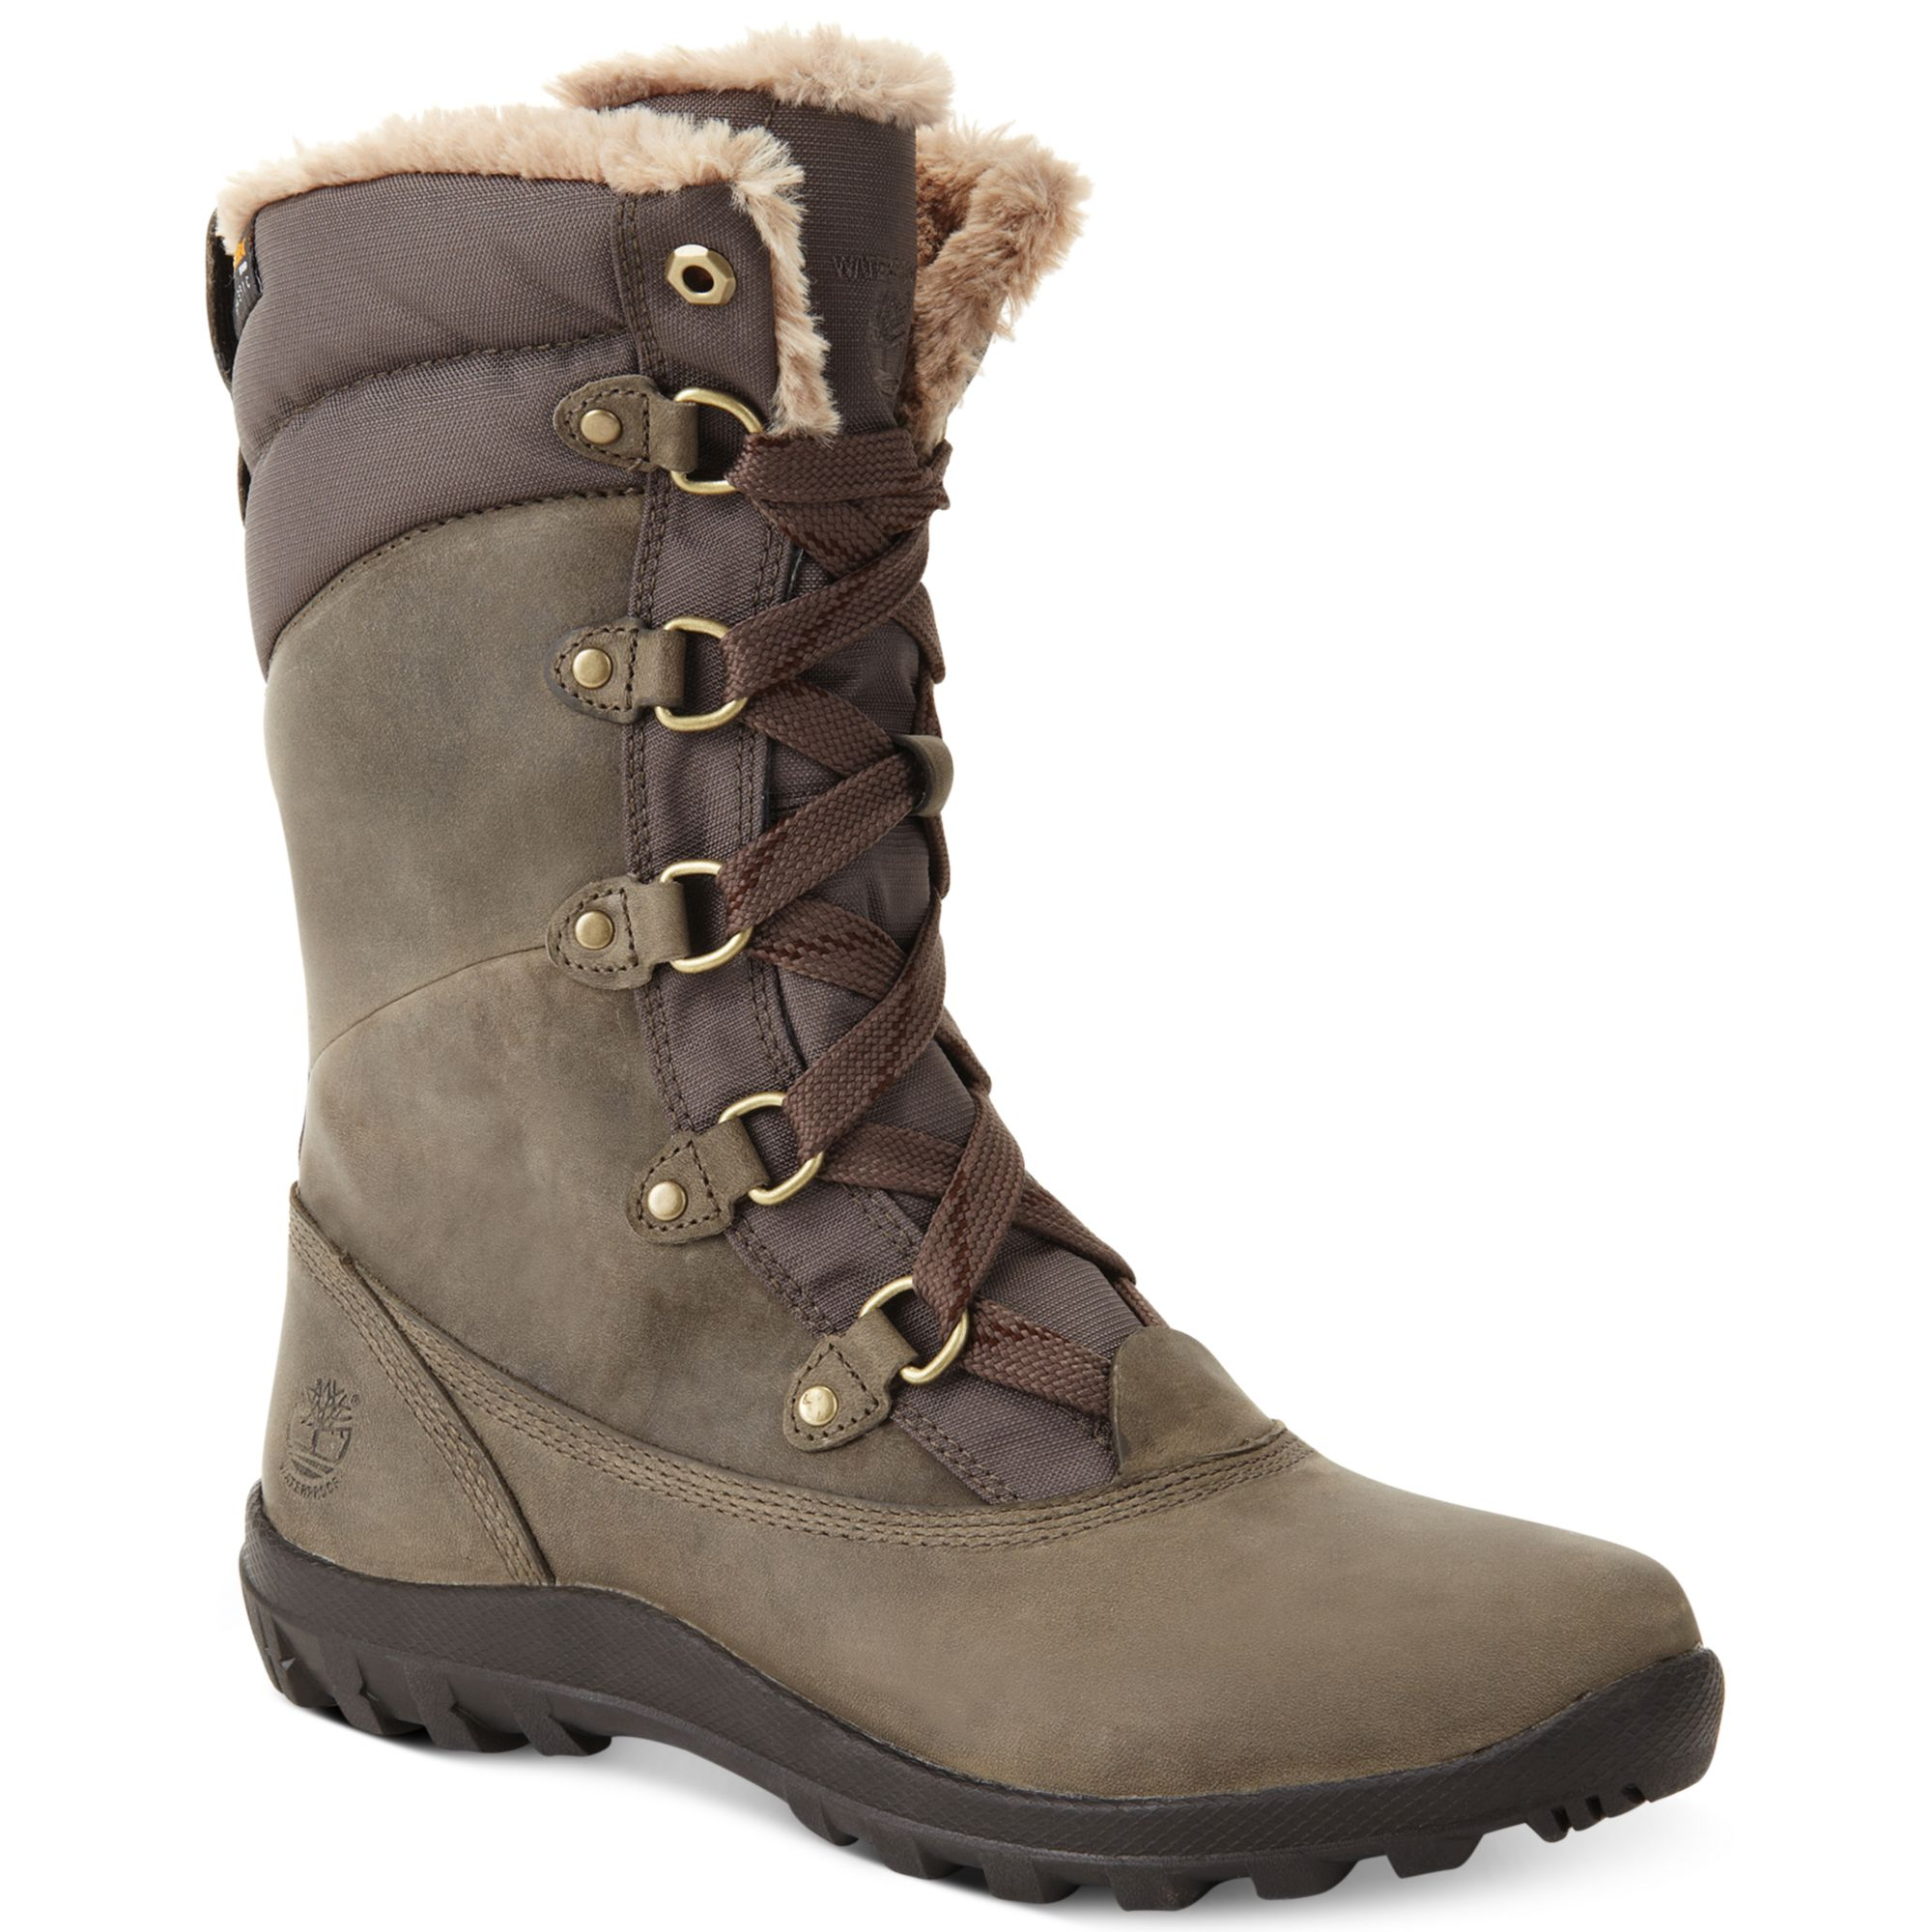 Timberland Mount Hope Snow Boots in Gray